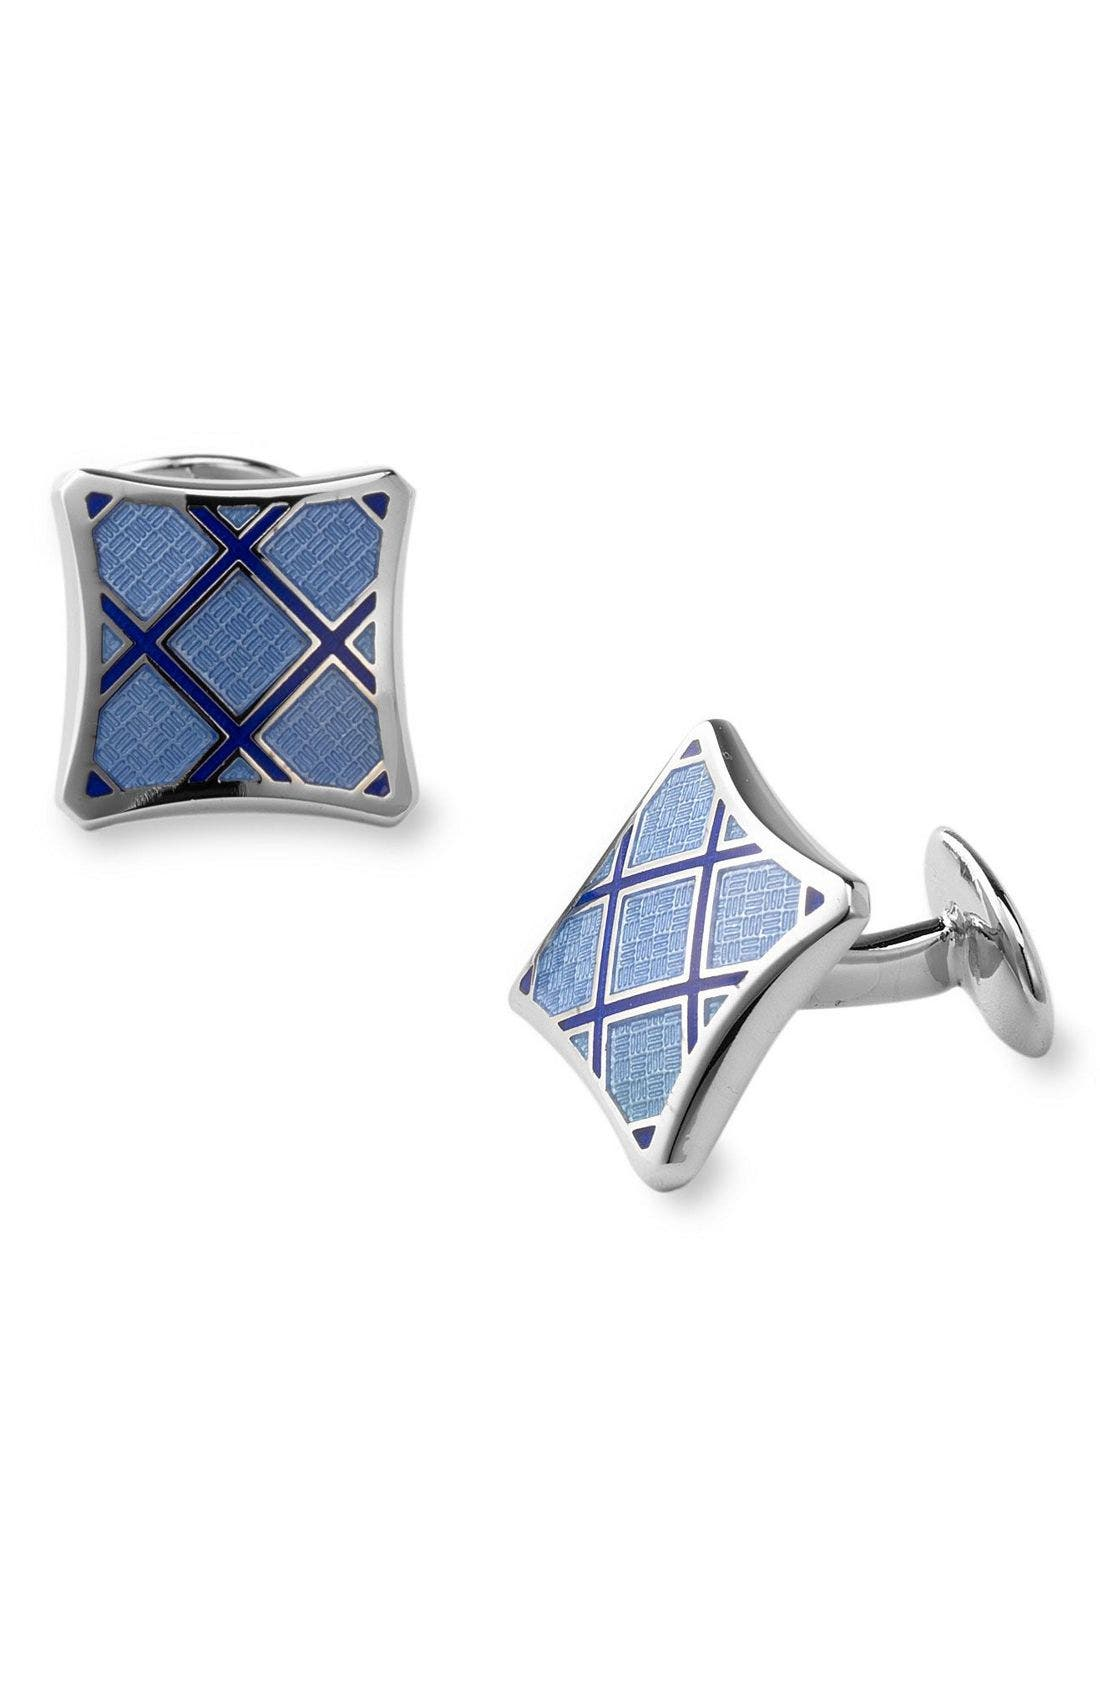 Sterling Silver Cuff Links,                         Main,                         color, Blue